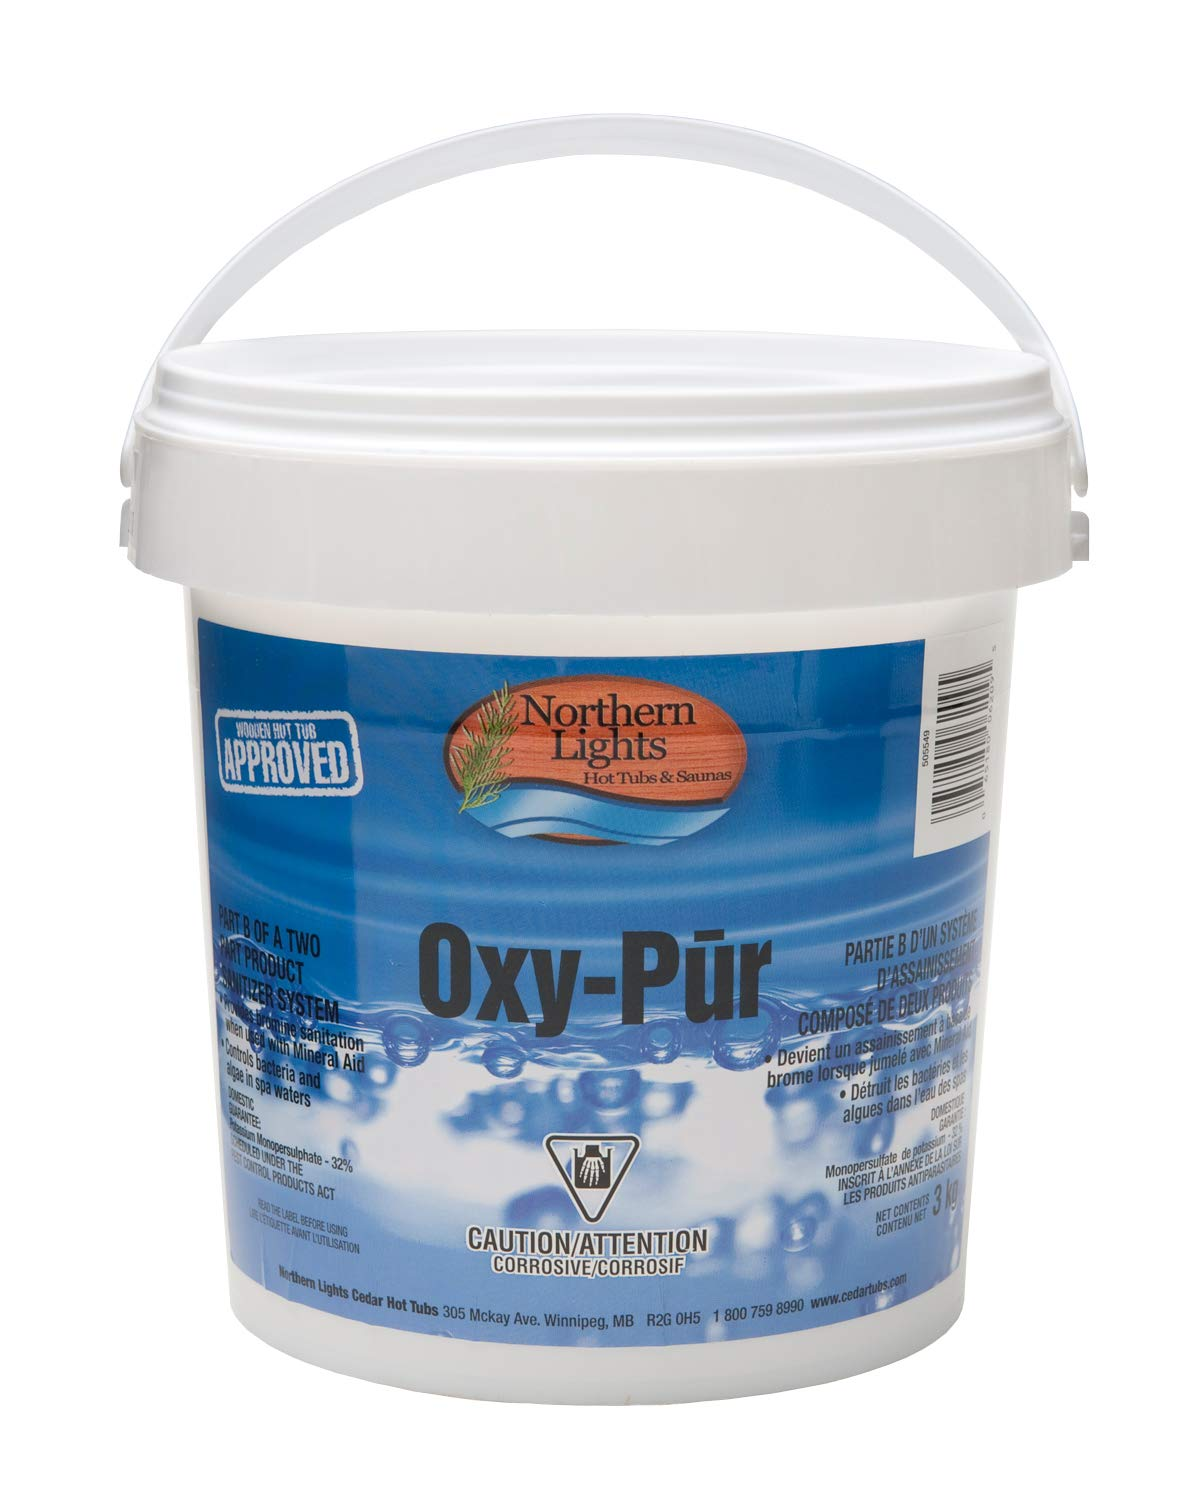 Northern Lights Group NLCT-OXY PUR-Part 2 of 2 part Bromine Sanitizer - 3 Kg by Northern Lights Group